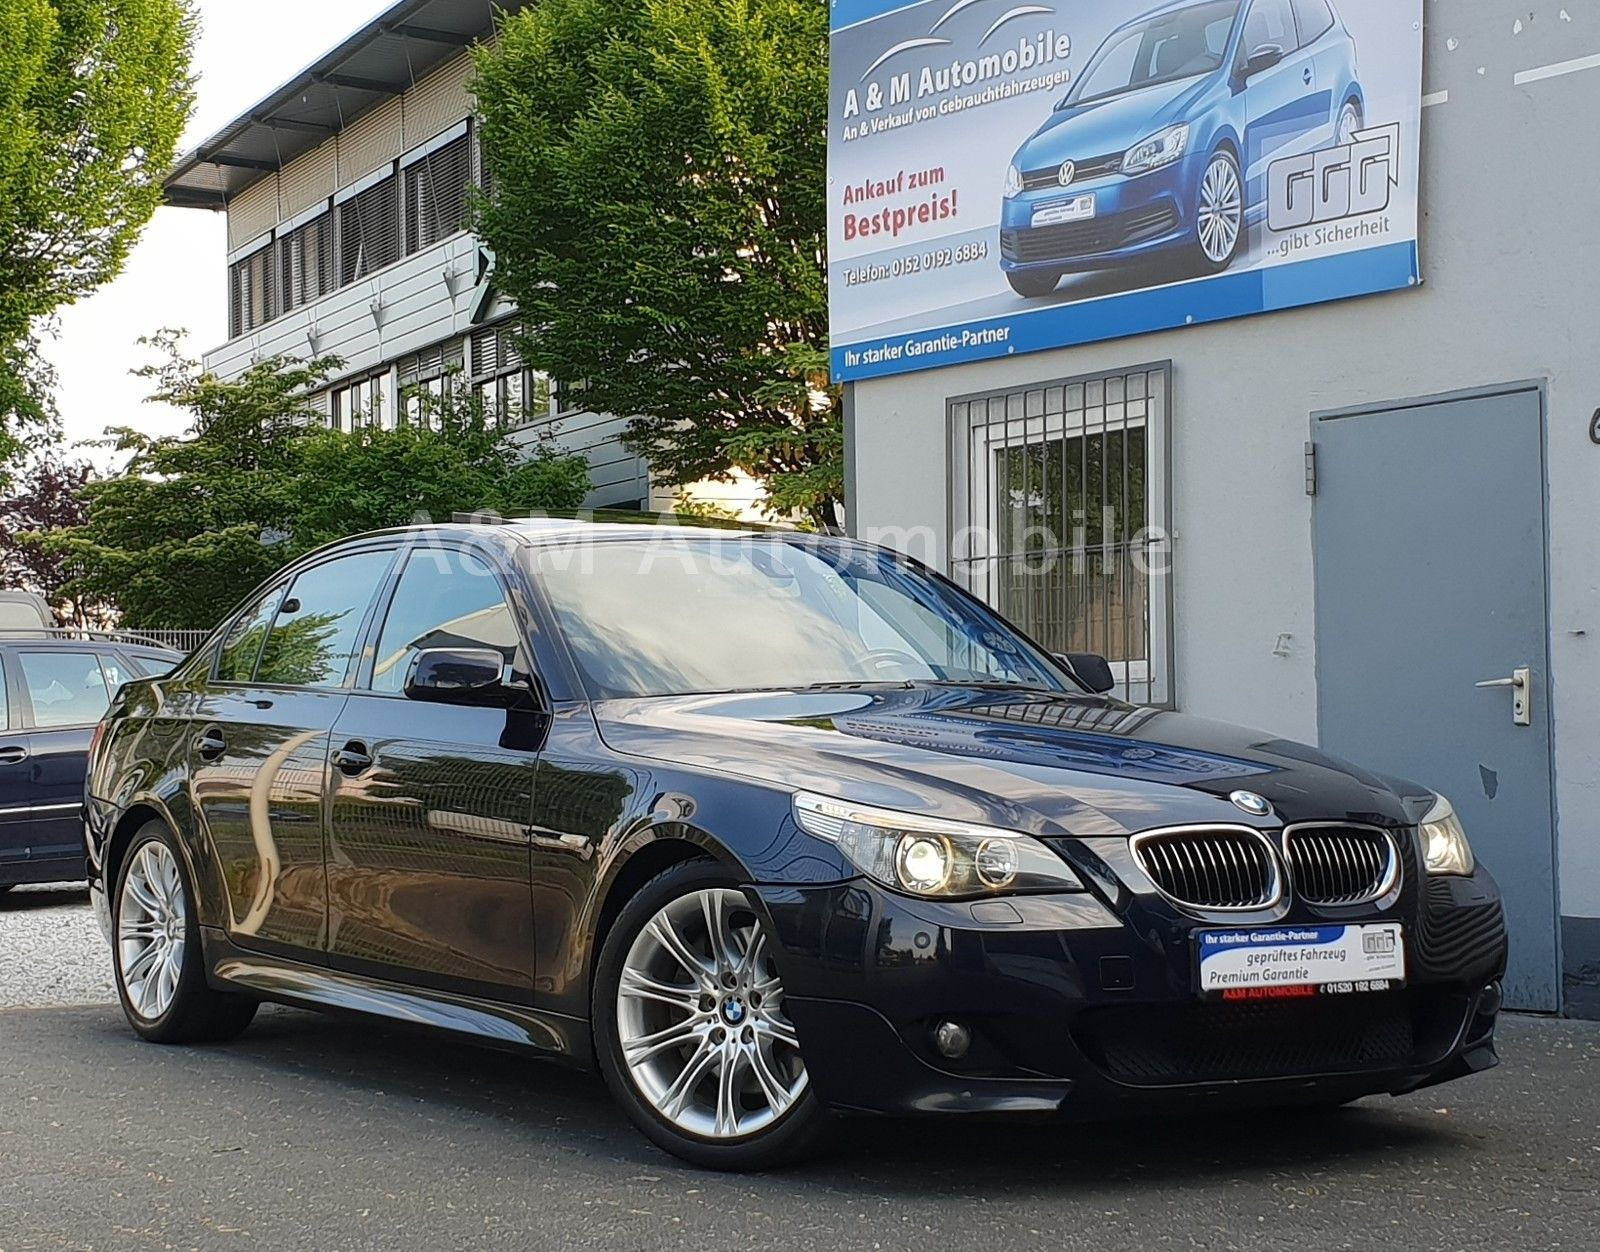 BMW 545i *M-Paket*-*Navi/Leder/Head-Up Display/1Hand